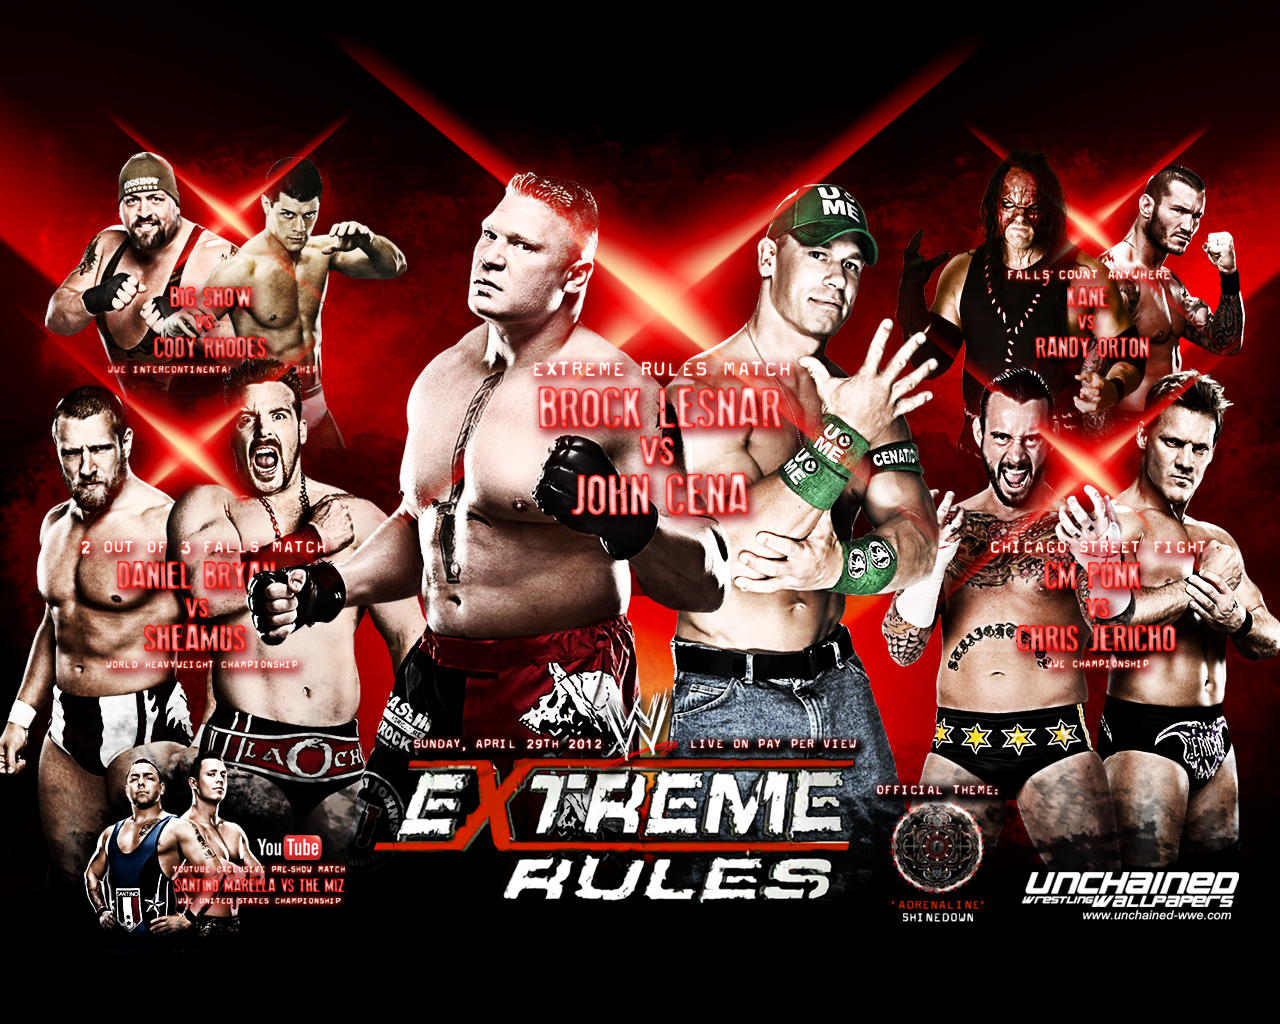 Wwe ppv wallpapers 2009 wallpaper202 - Night of champions 2010 match card ...